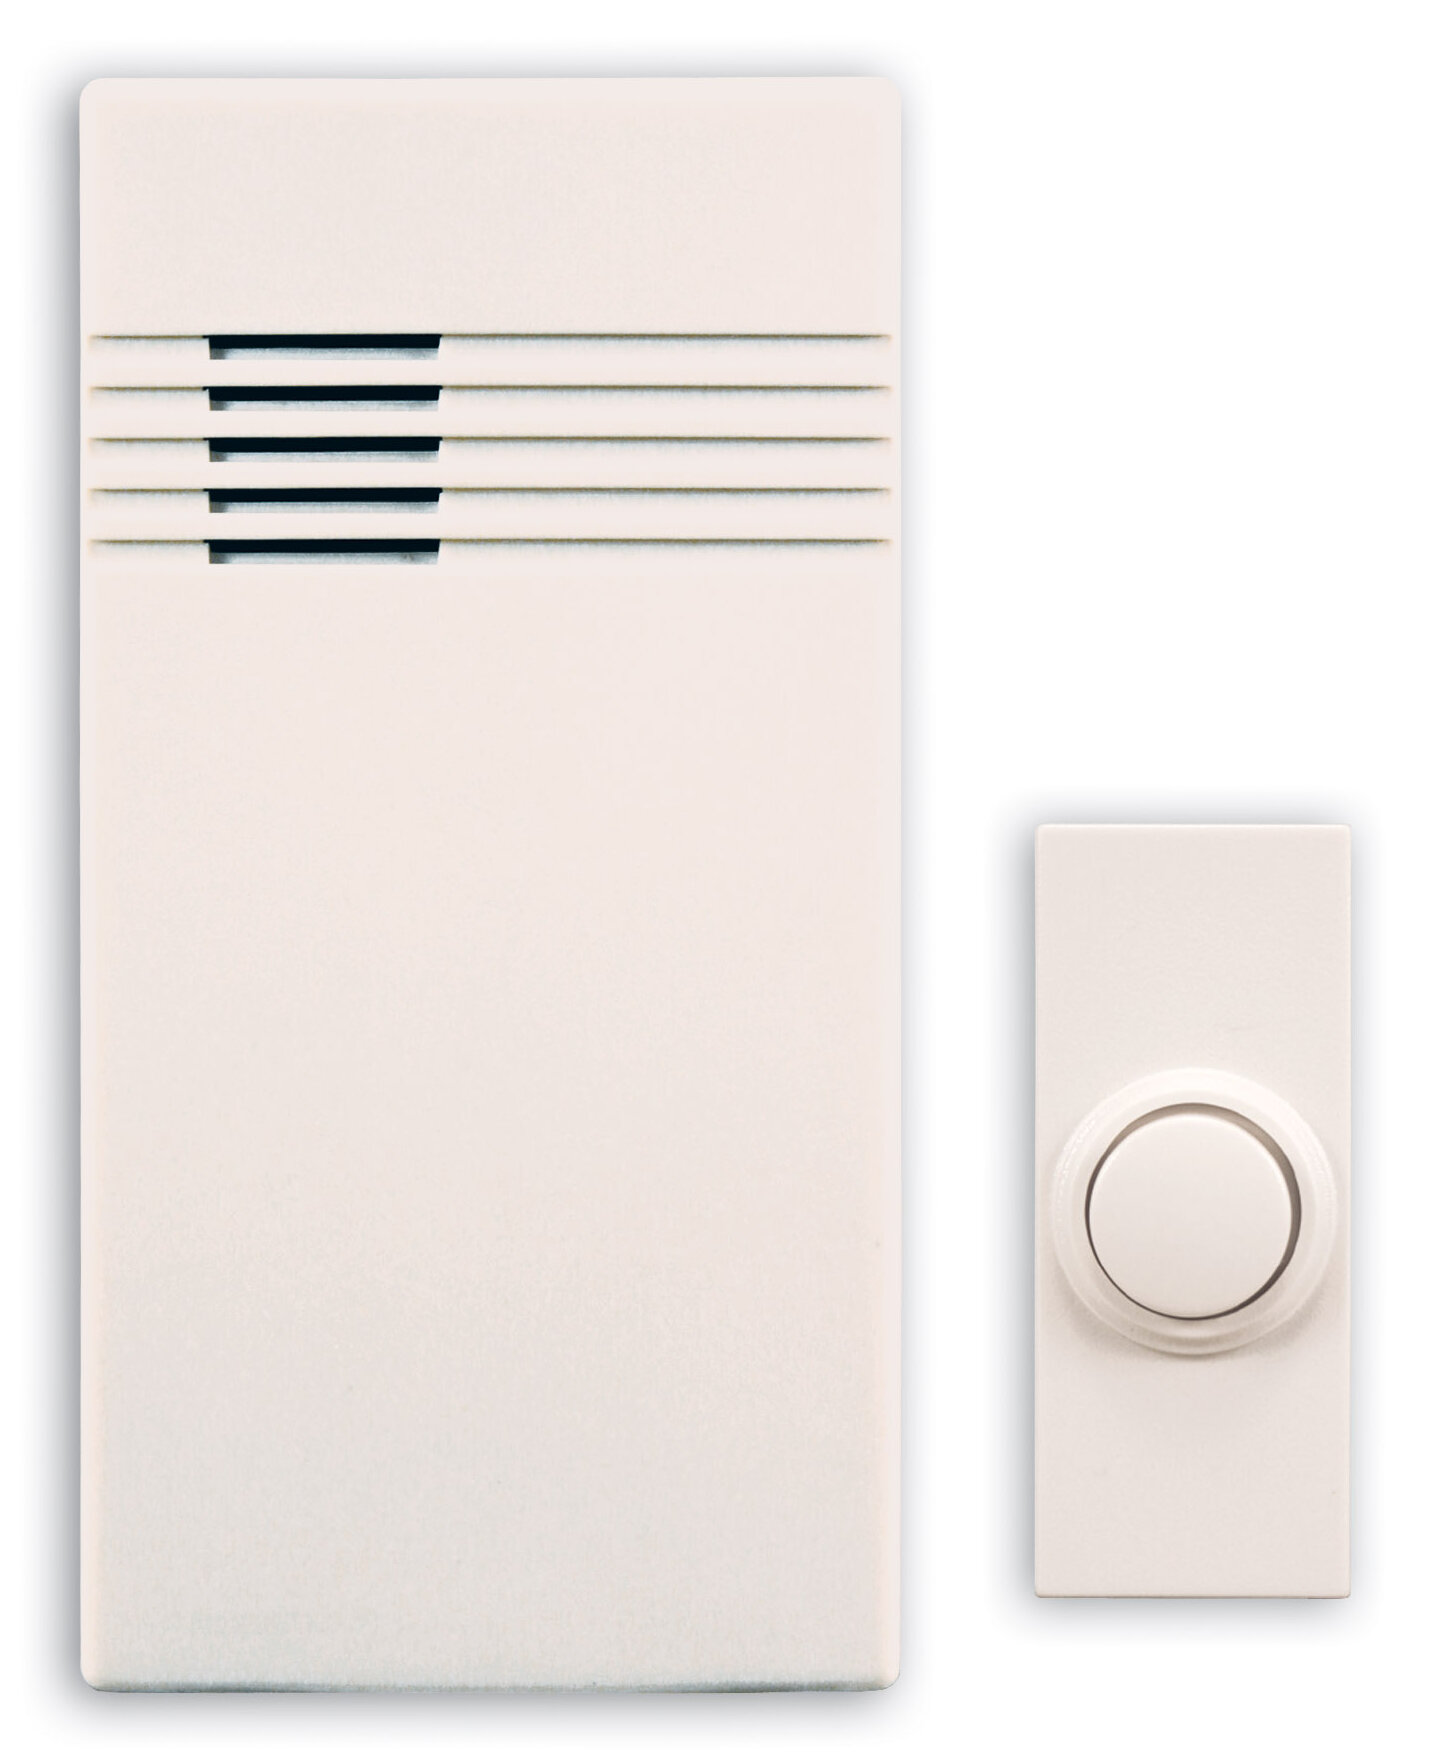 Heath Zenith Wireless Battery Operated Door Chime Kit With Off White How To Add A Second Doorbell Cover Reviews Wayfair